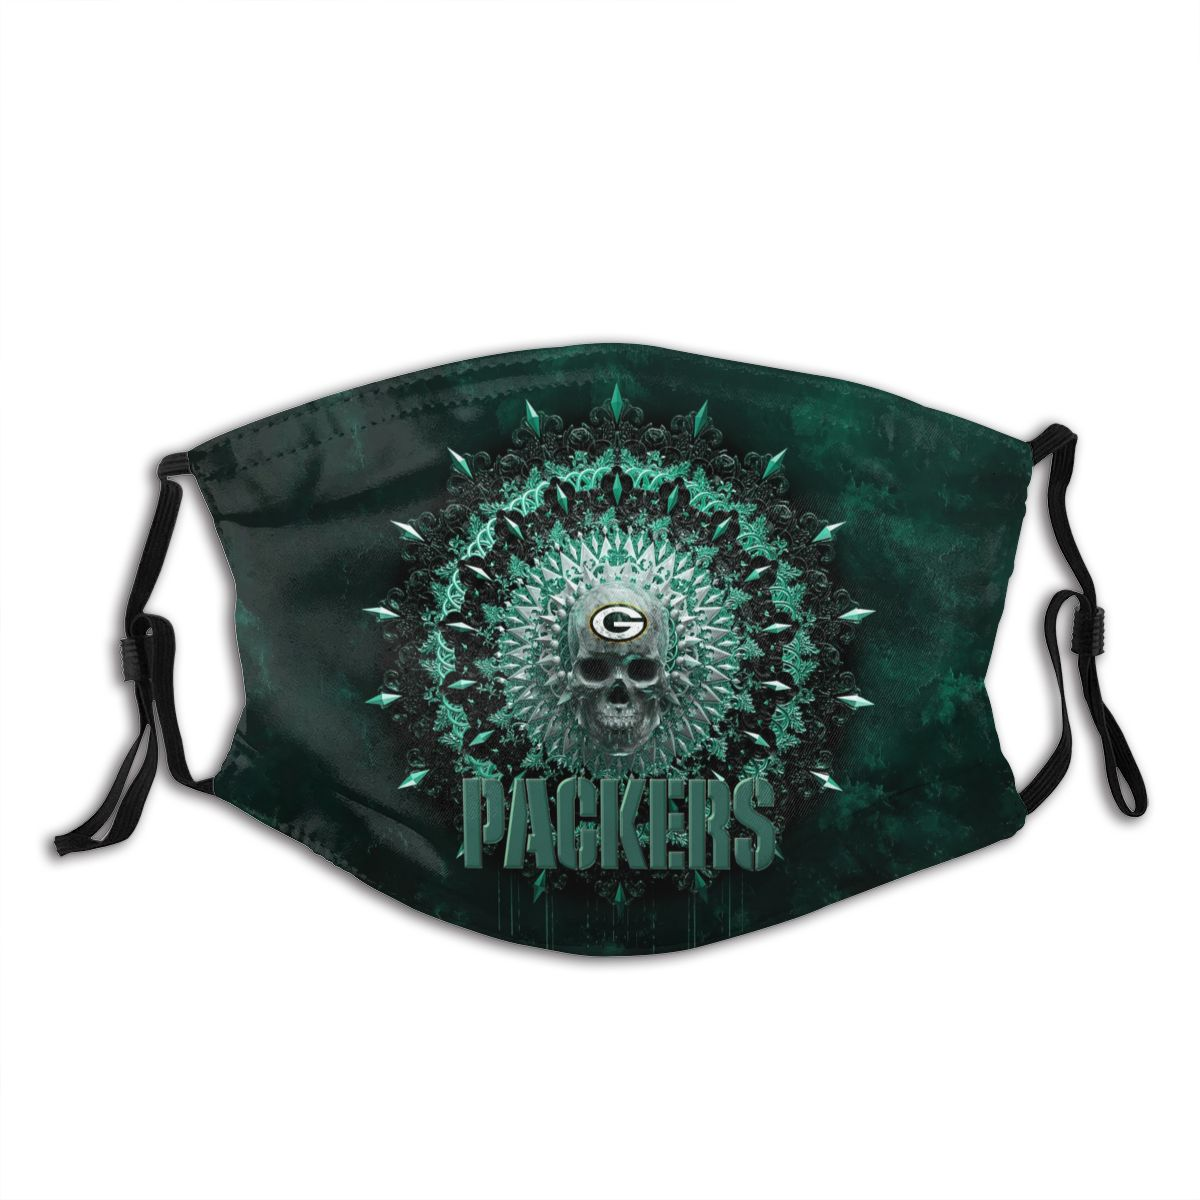 Packers Adult Cloth Face Covering With Filter